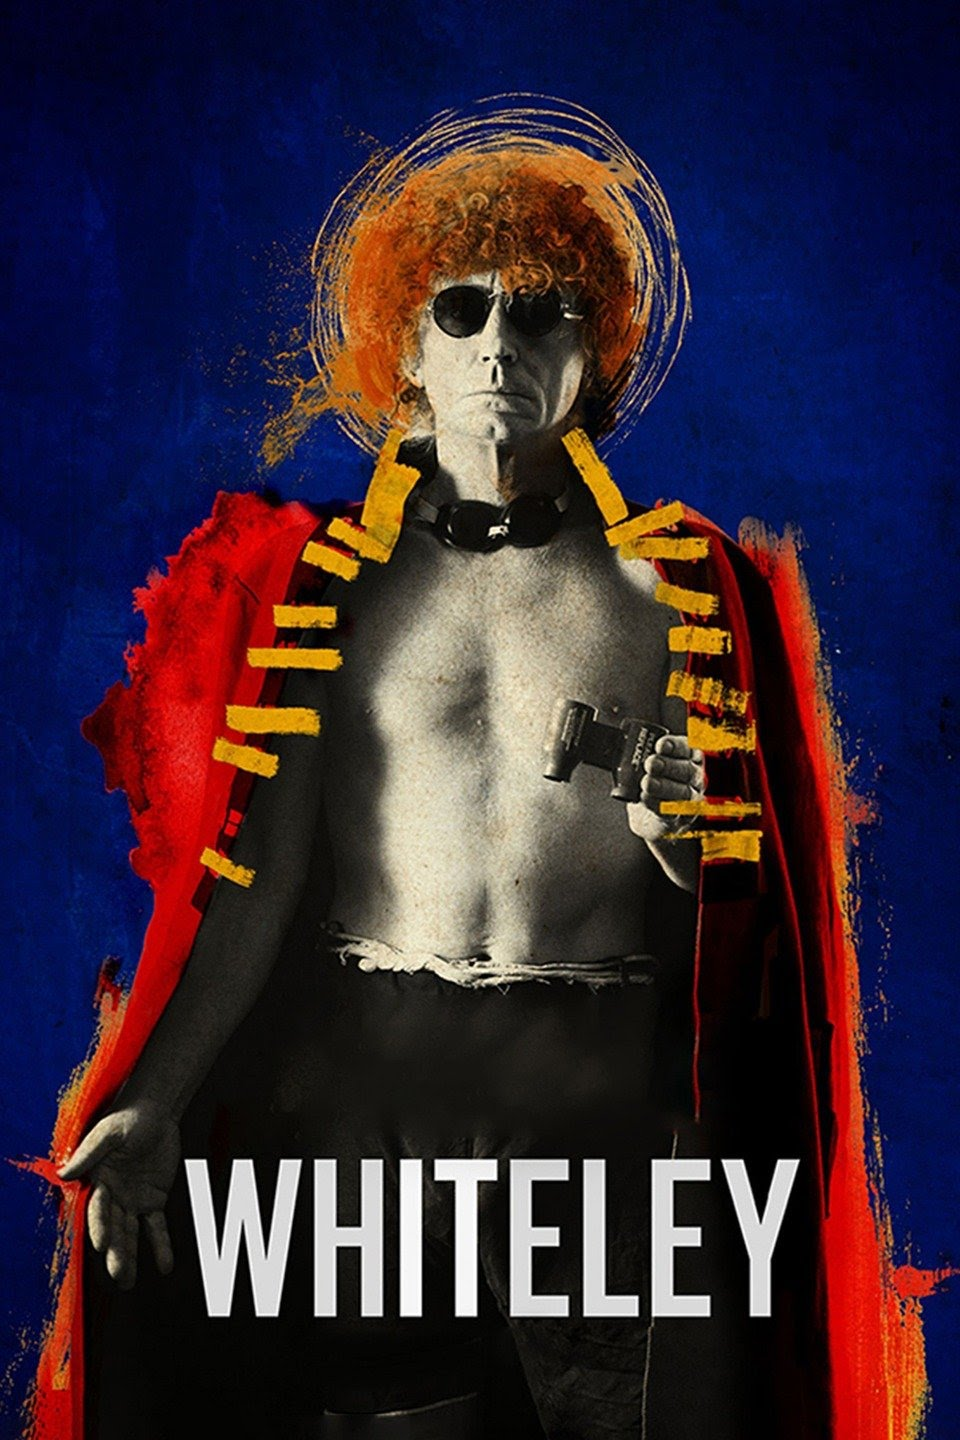 Brett Whiteley Documentary